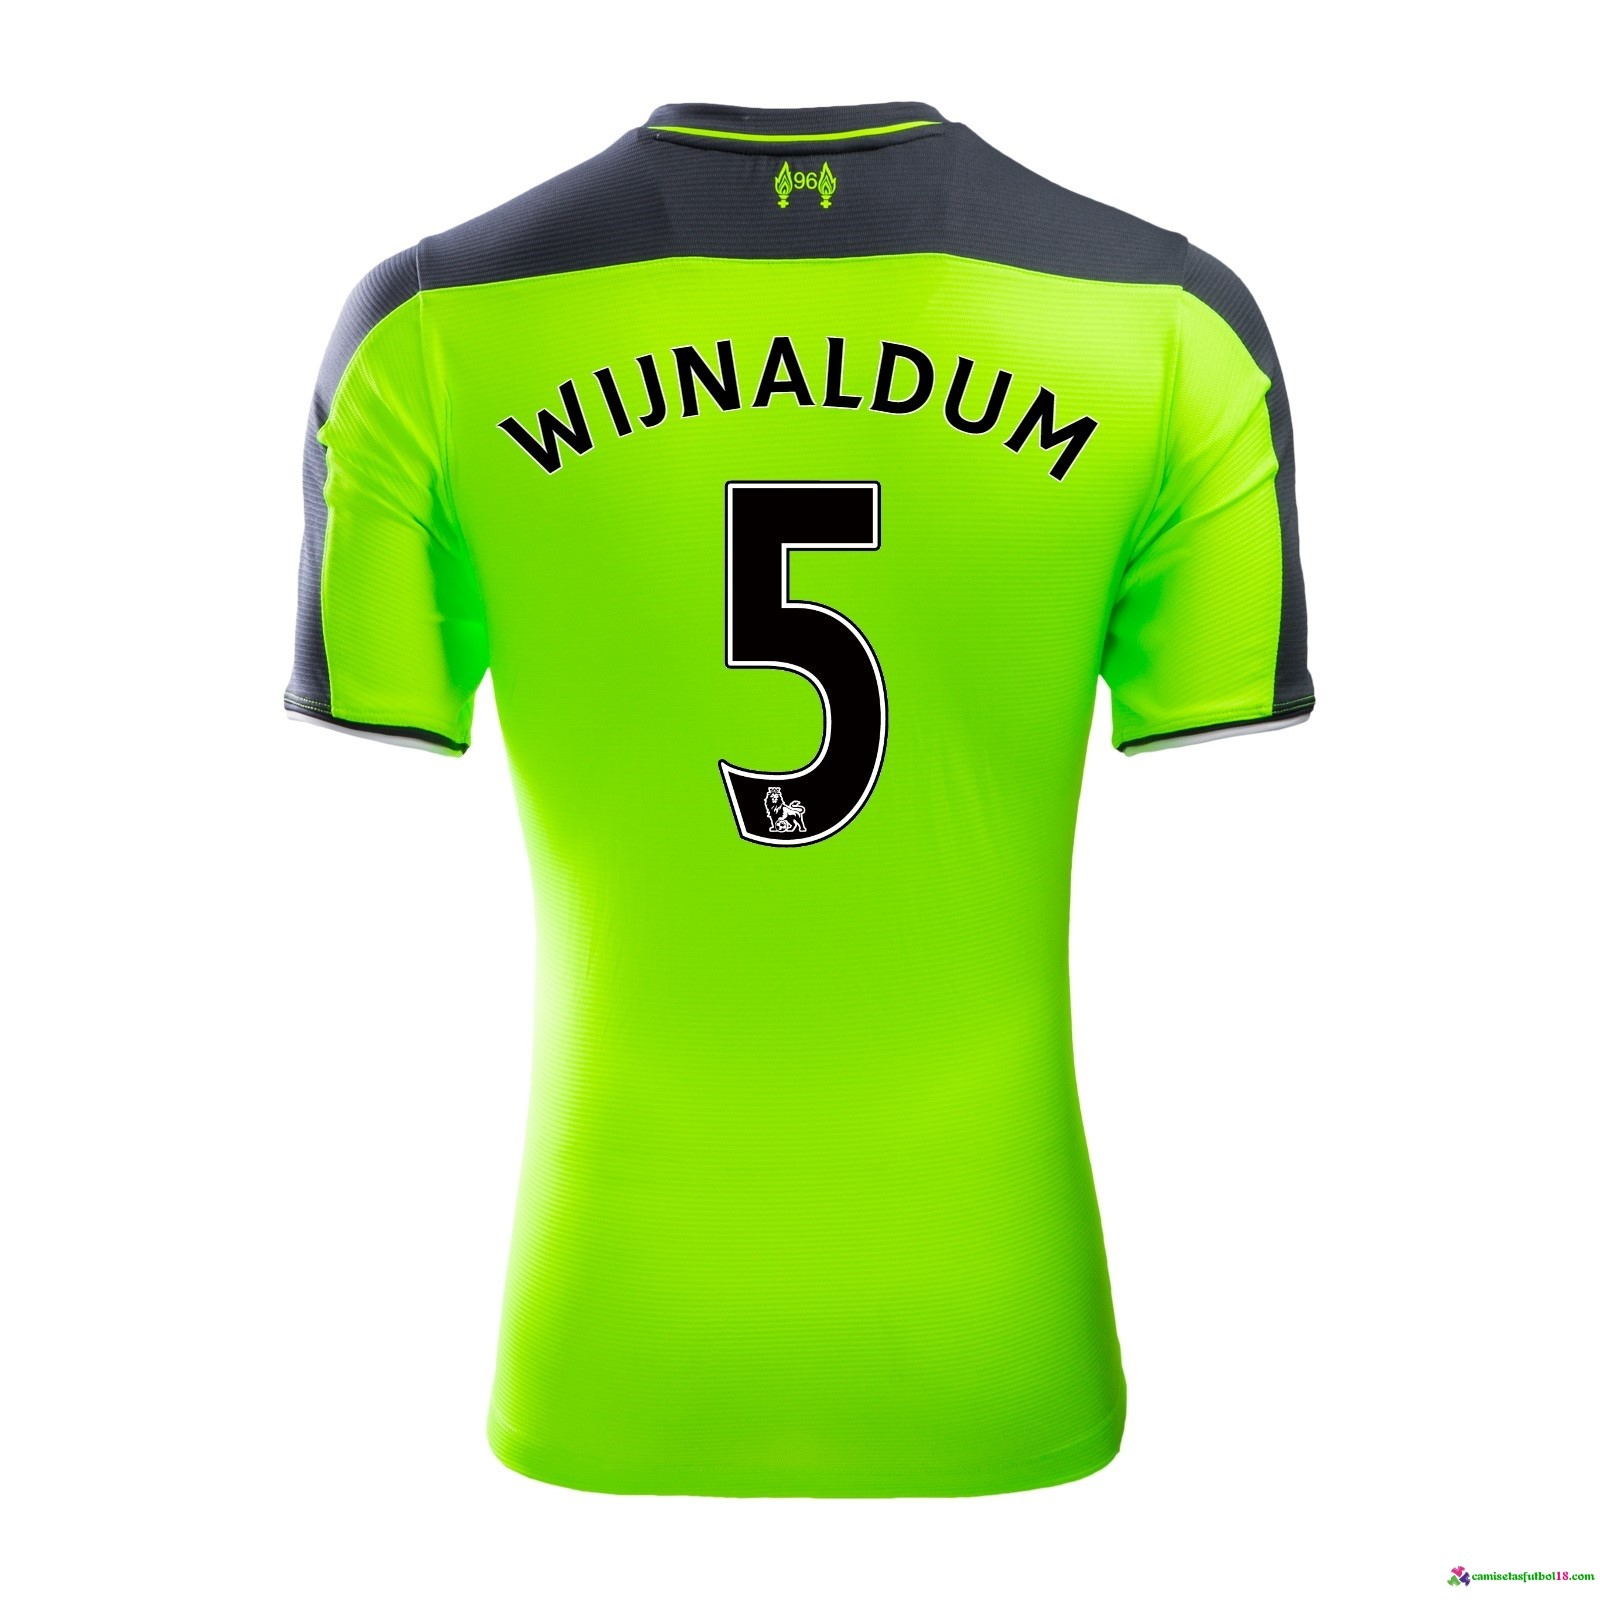 Wijnaldum Camiseta 3ª Kit Liverpool 2016 2017